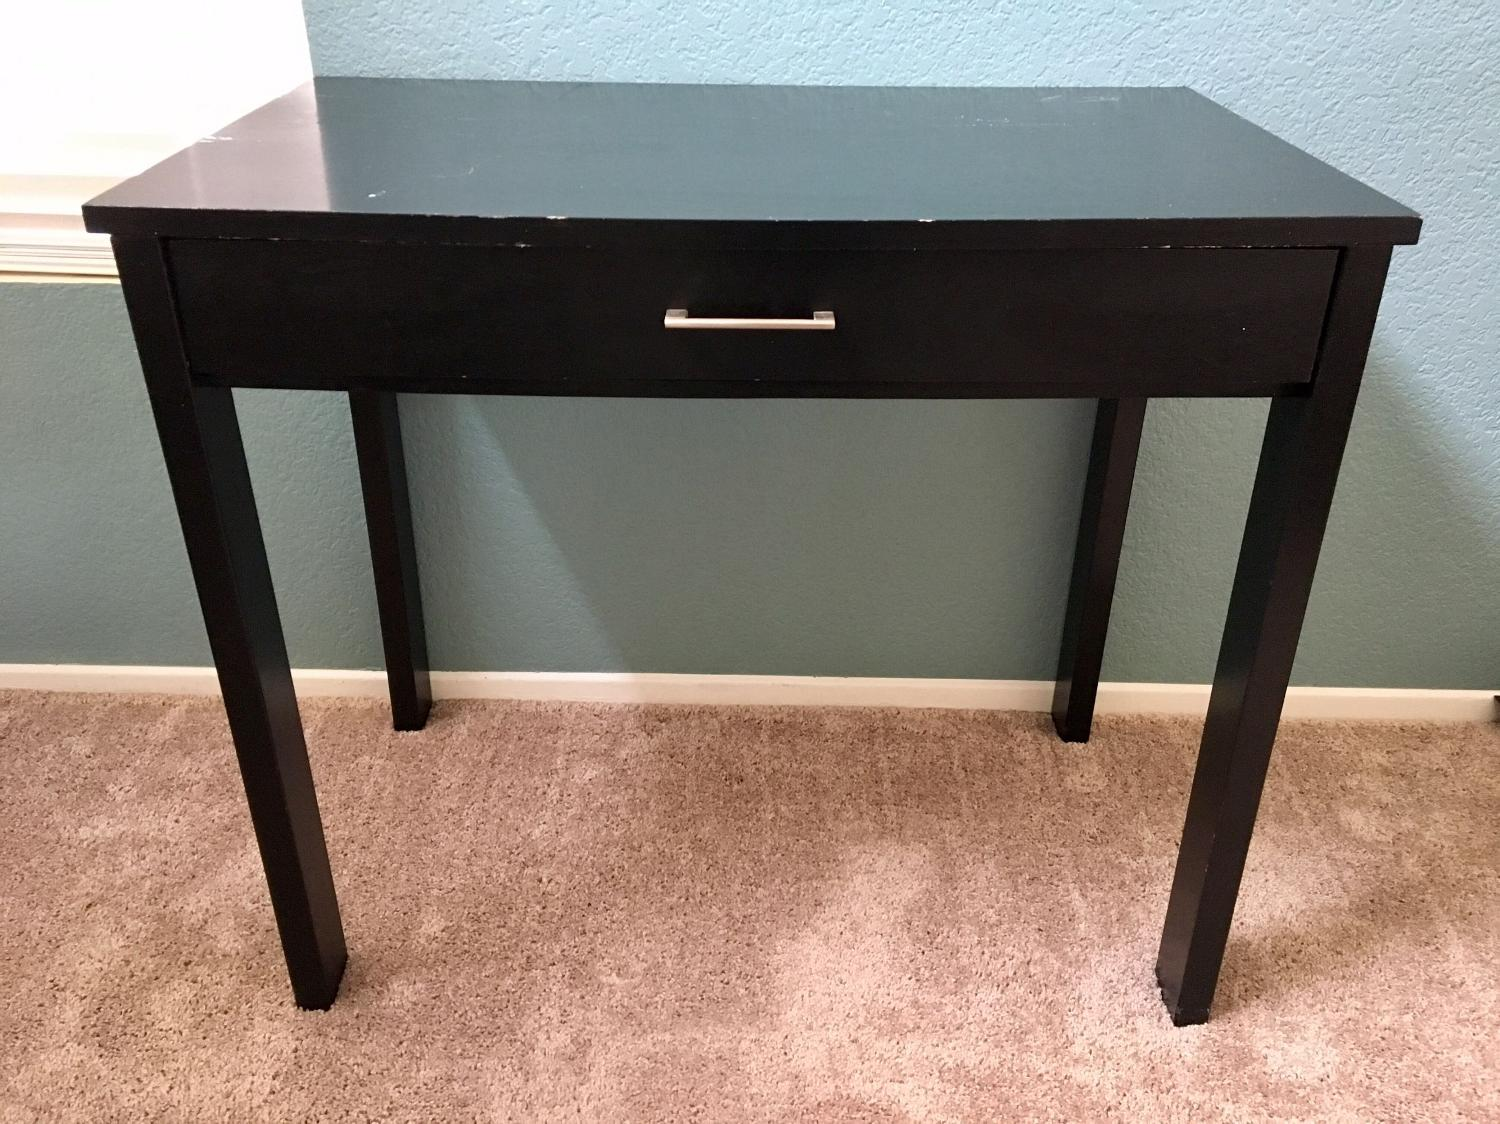 Find More Black Writing Computer Desk For Sale At Up To 90 Off Menifee CA